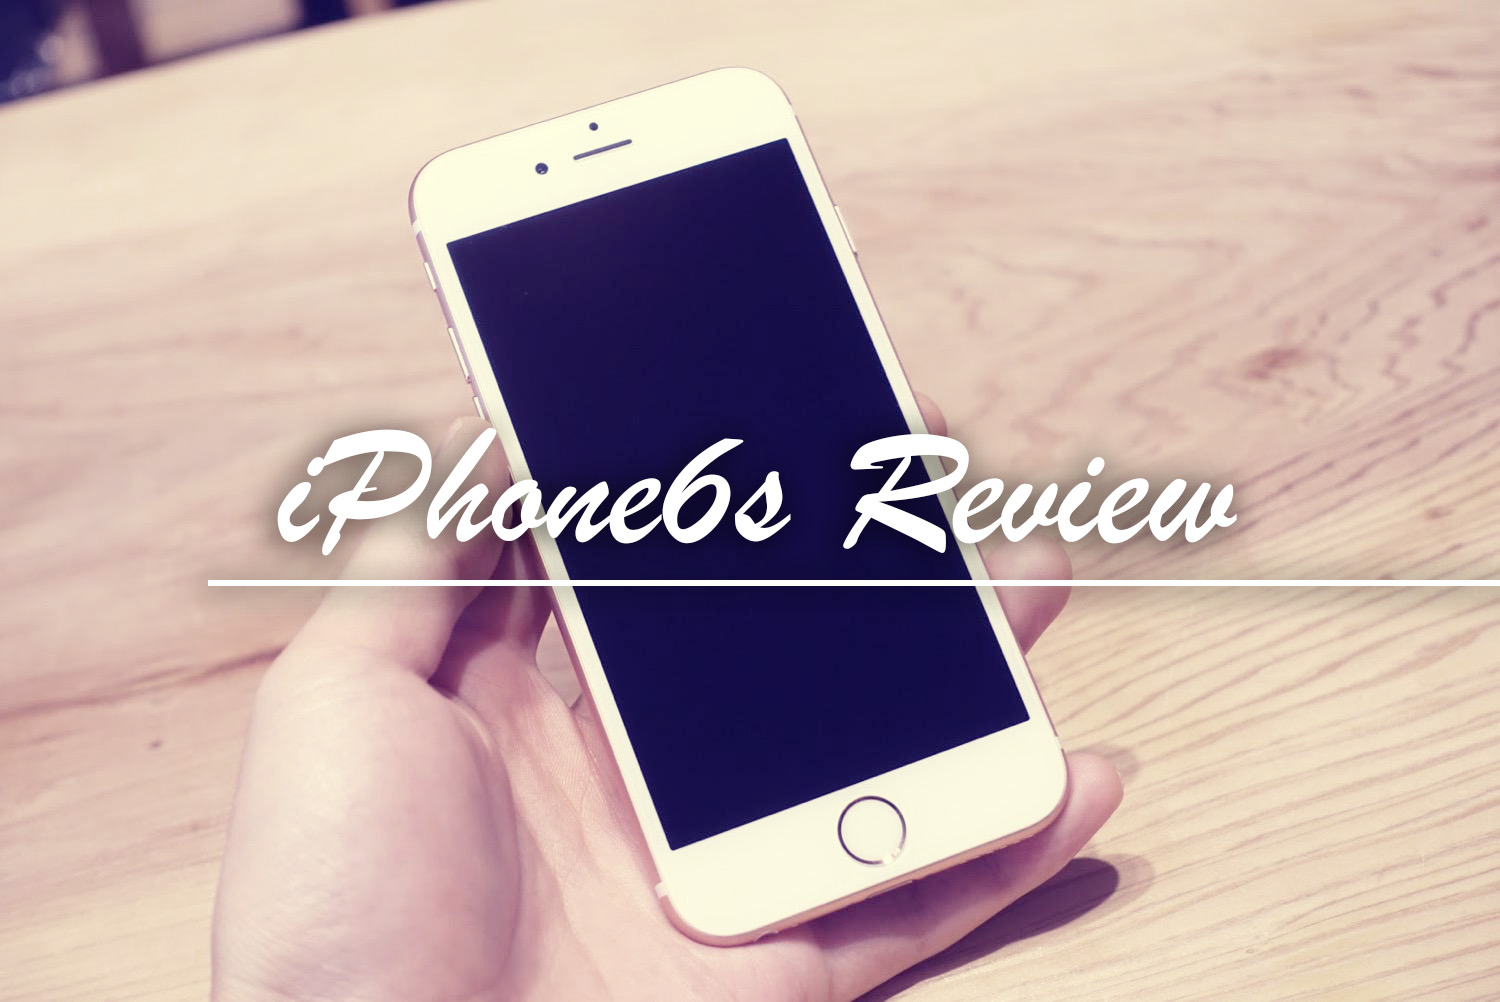 Iphone6s reviewtop